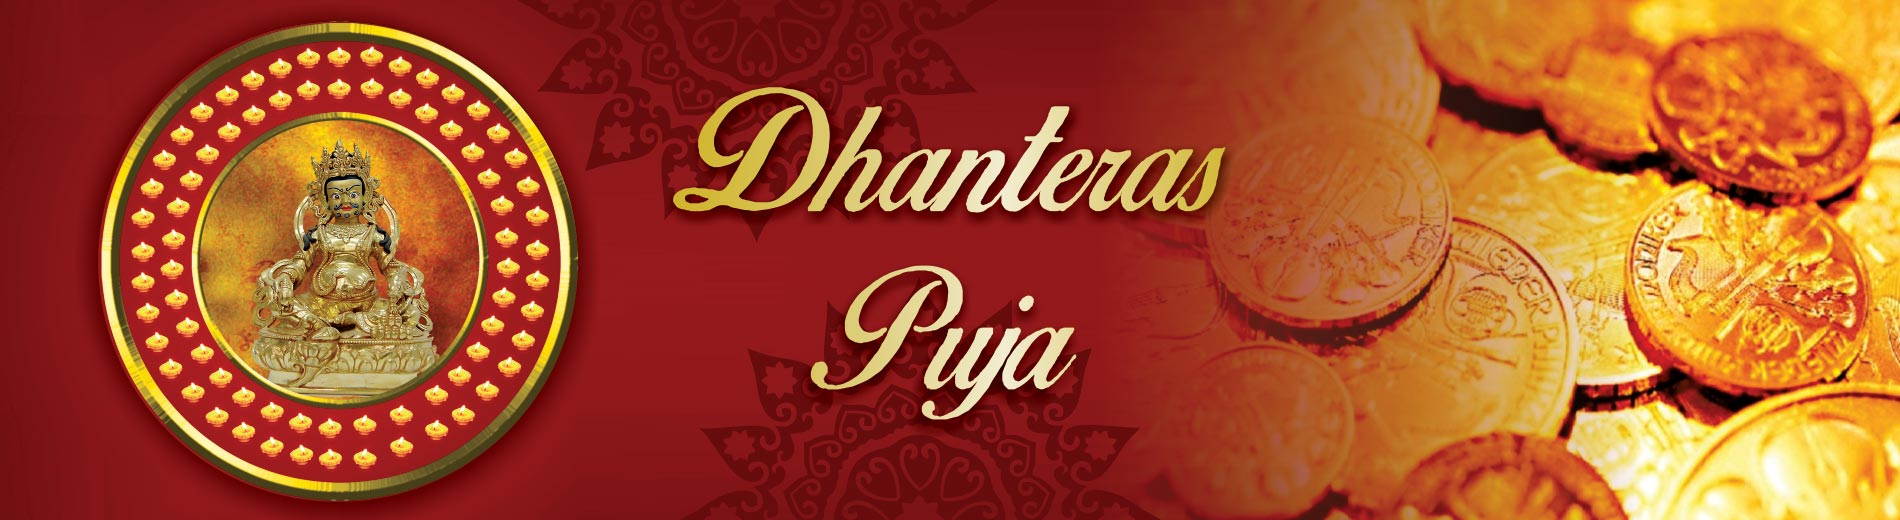 Dhanteras Puja Wishes Header Image. Happy Mothers Day Lettering. Puma Logo. Police Islamabad Logo. Strategic Sourcing Banners. Baby Head Signs. Hard Hat Decals. Game Throne Murals. Digital Wall Murals